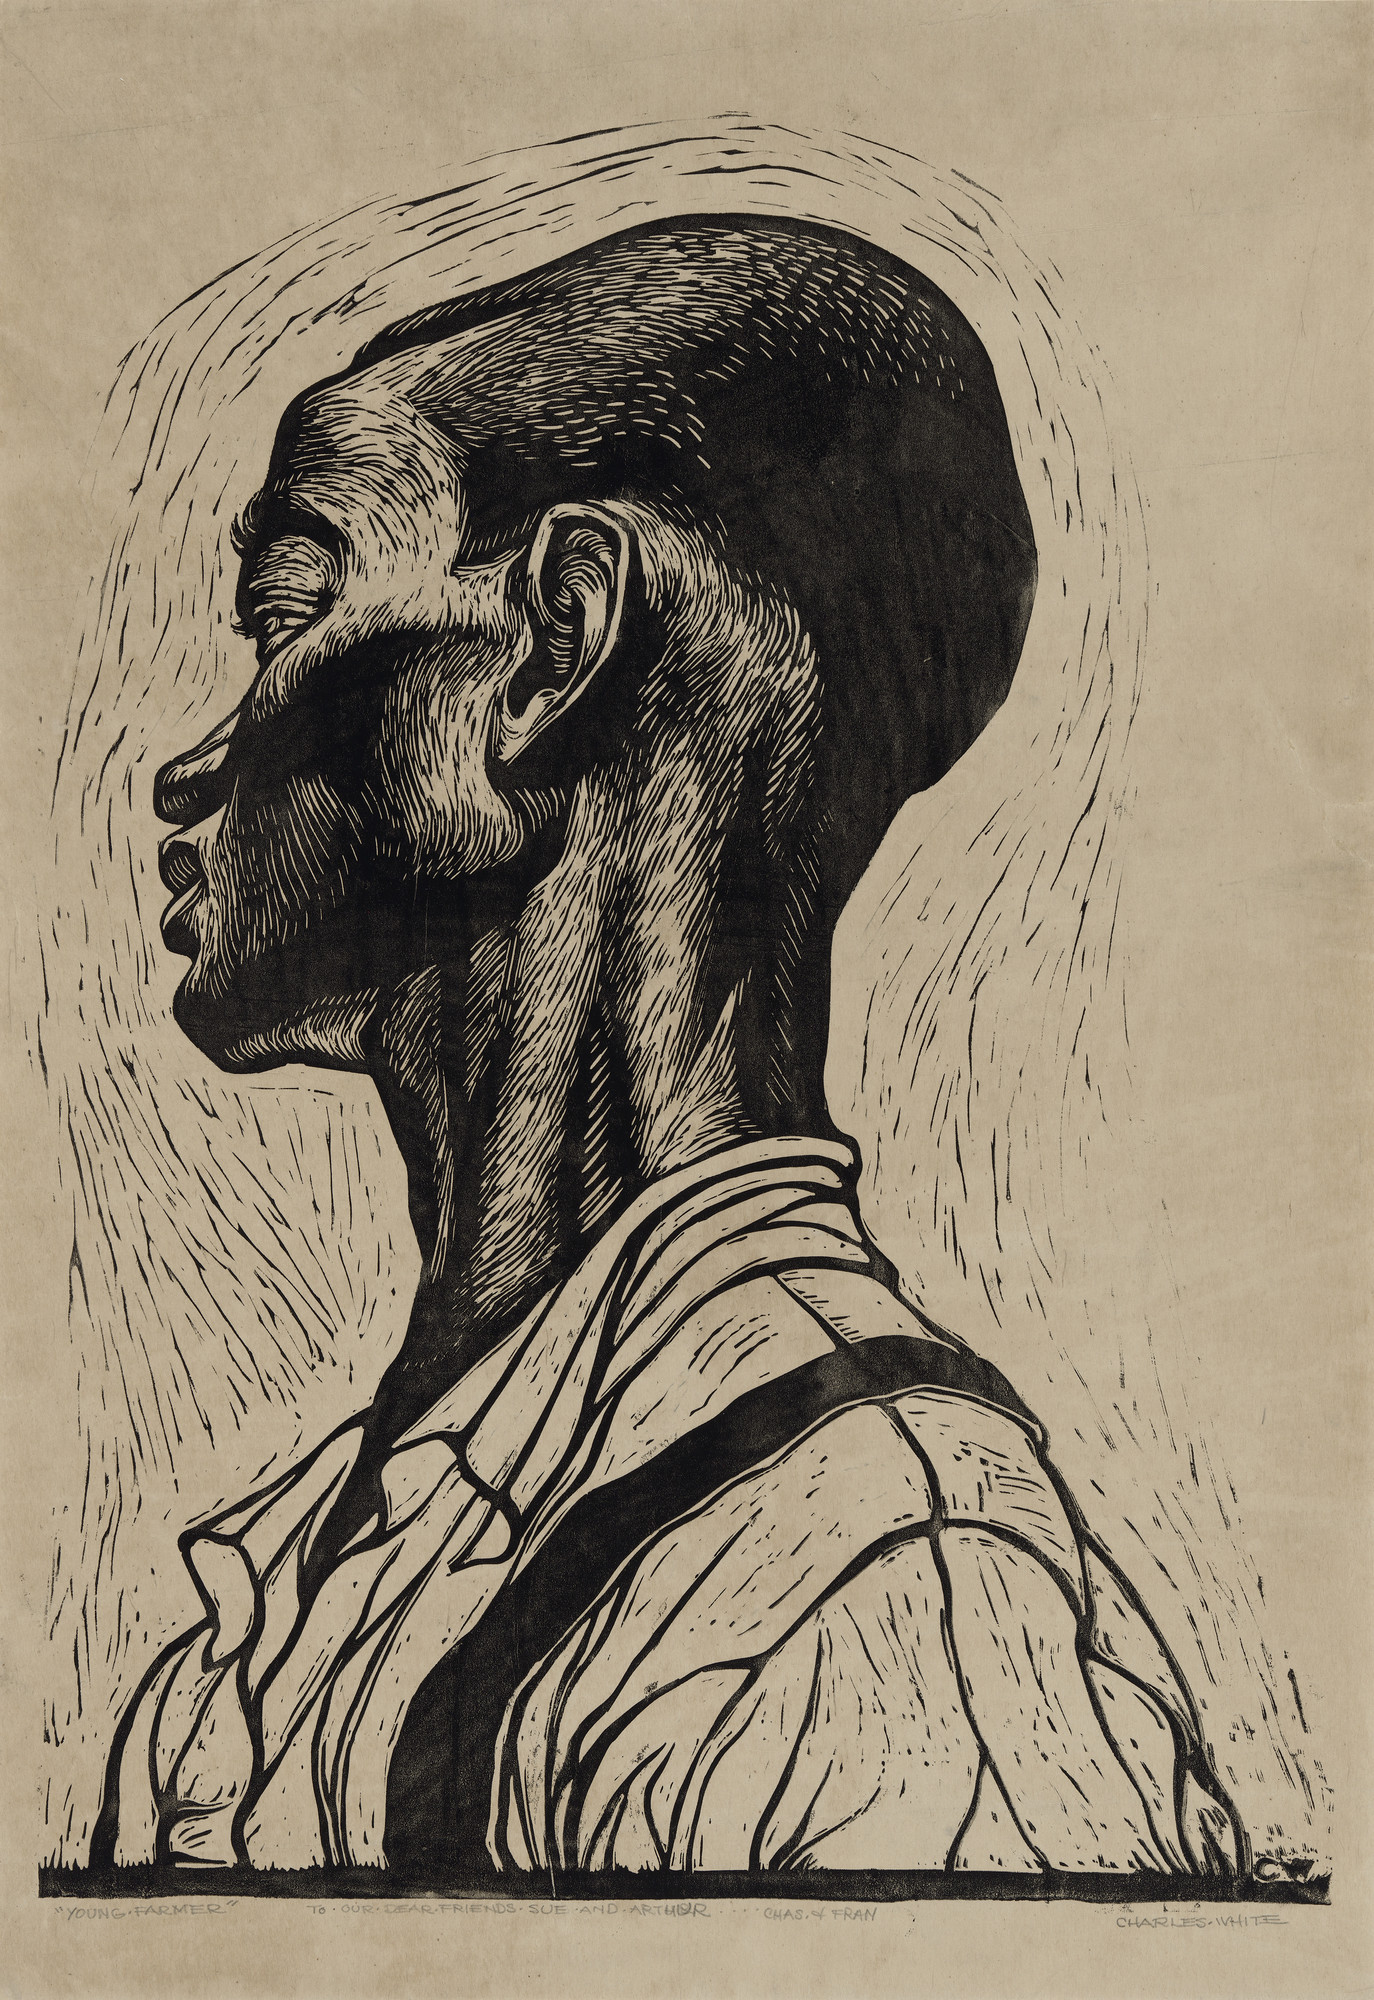 "Charles White. _Young Farmer_. 1953. Linoleum cut. 28 3/4 x 19 13/16"" (73 x 50.4 cm). Museum of Fine Arts, Boston. Lee M. Friedman Fund and The Heritage Fund for a Diverse Collection. © The Charles White Archives/ Photo © 2018 Museum of Fine Arts, Boston"